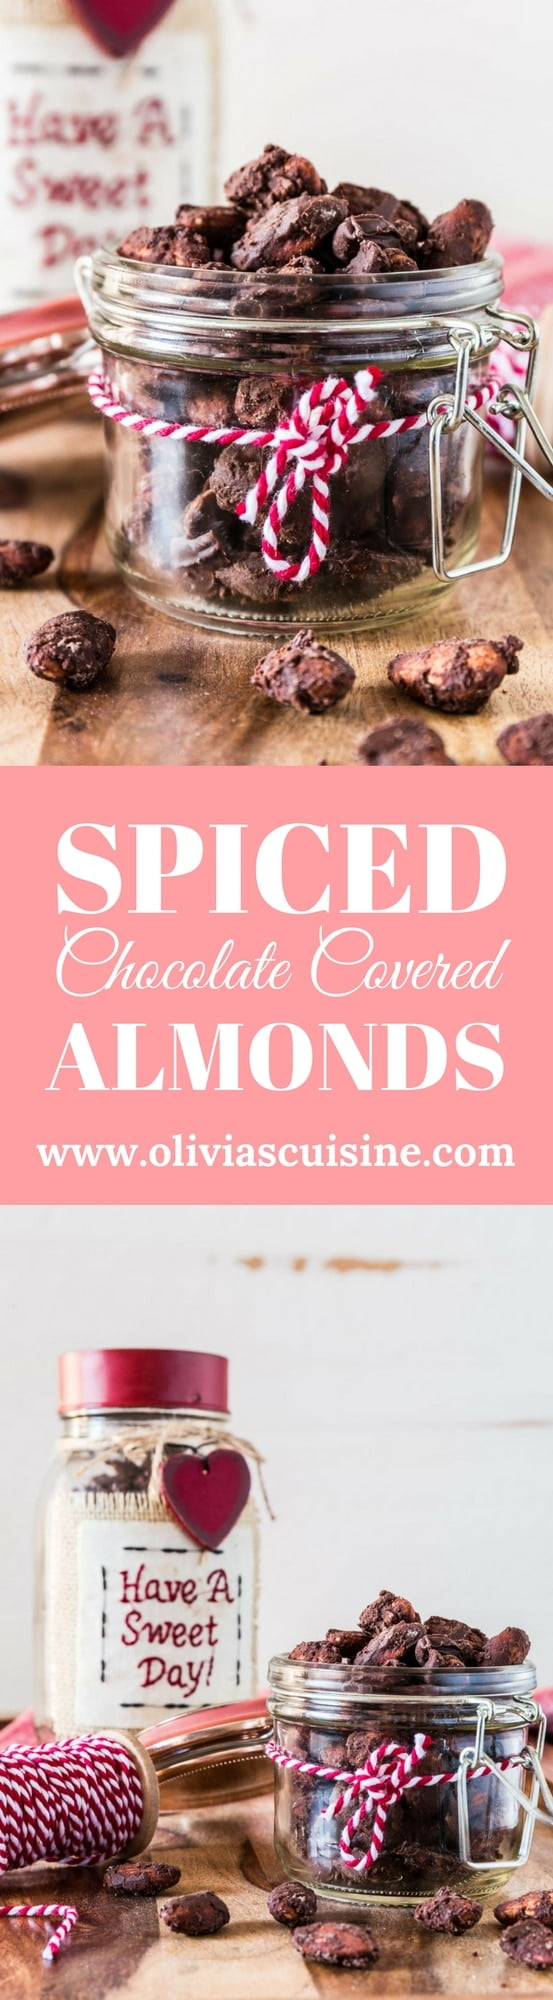 Spiced Chocolate Covered Almonds | www.oliviascuisine.com | If you love chocolate covered almonds, you'll fall head-over-heels in love with this spiced version. They are great as an everyday snack but they also make a lovely edible gift!